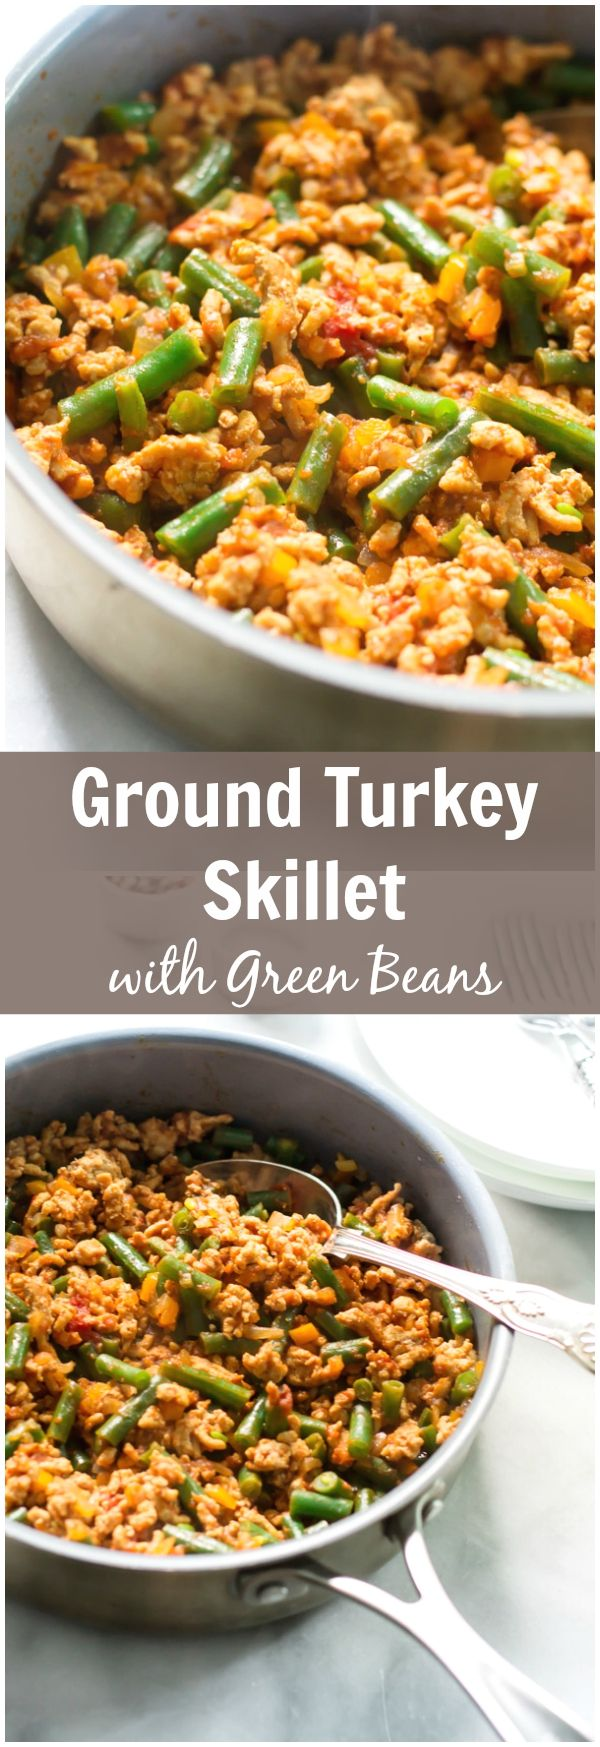 A very gluten free Ground Turkey Skillet with Green Beans recipe that is definitely easy to make and tasty meal for your family dinner.